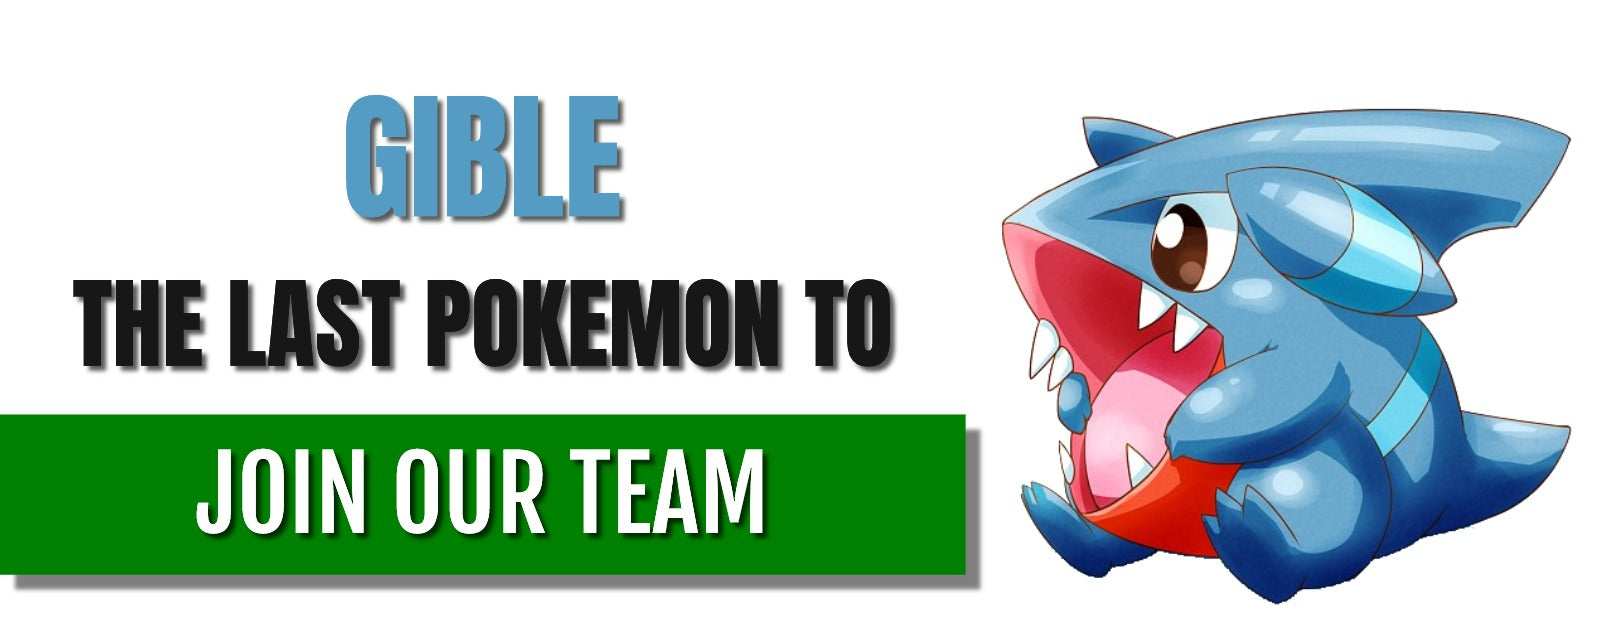 gible the last pokemon to join our team